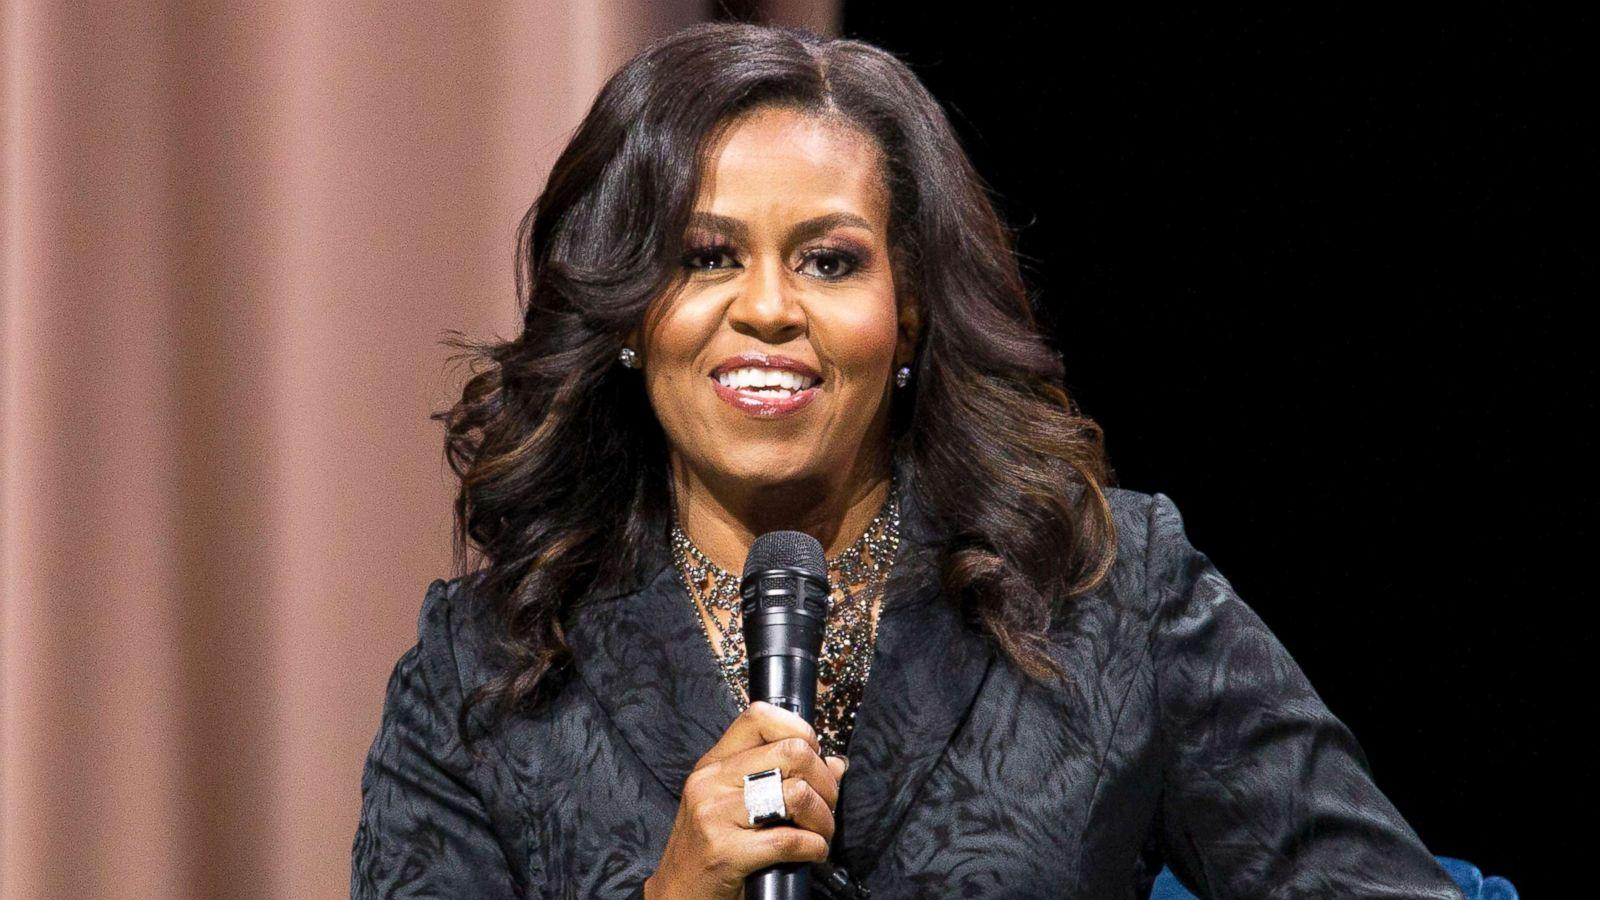 Michelle Obama's Fans Beg Her To Run For President - Here's Her Response!